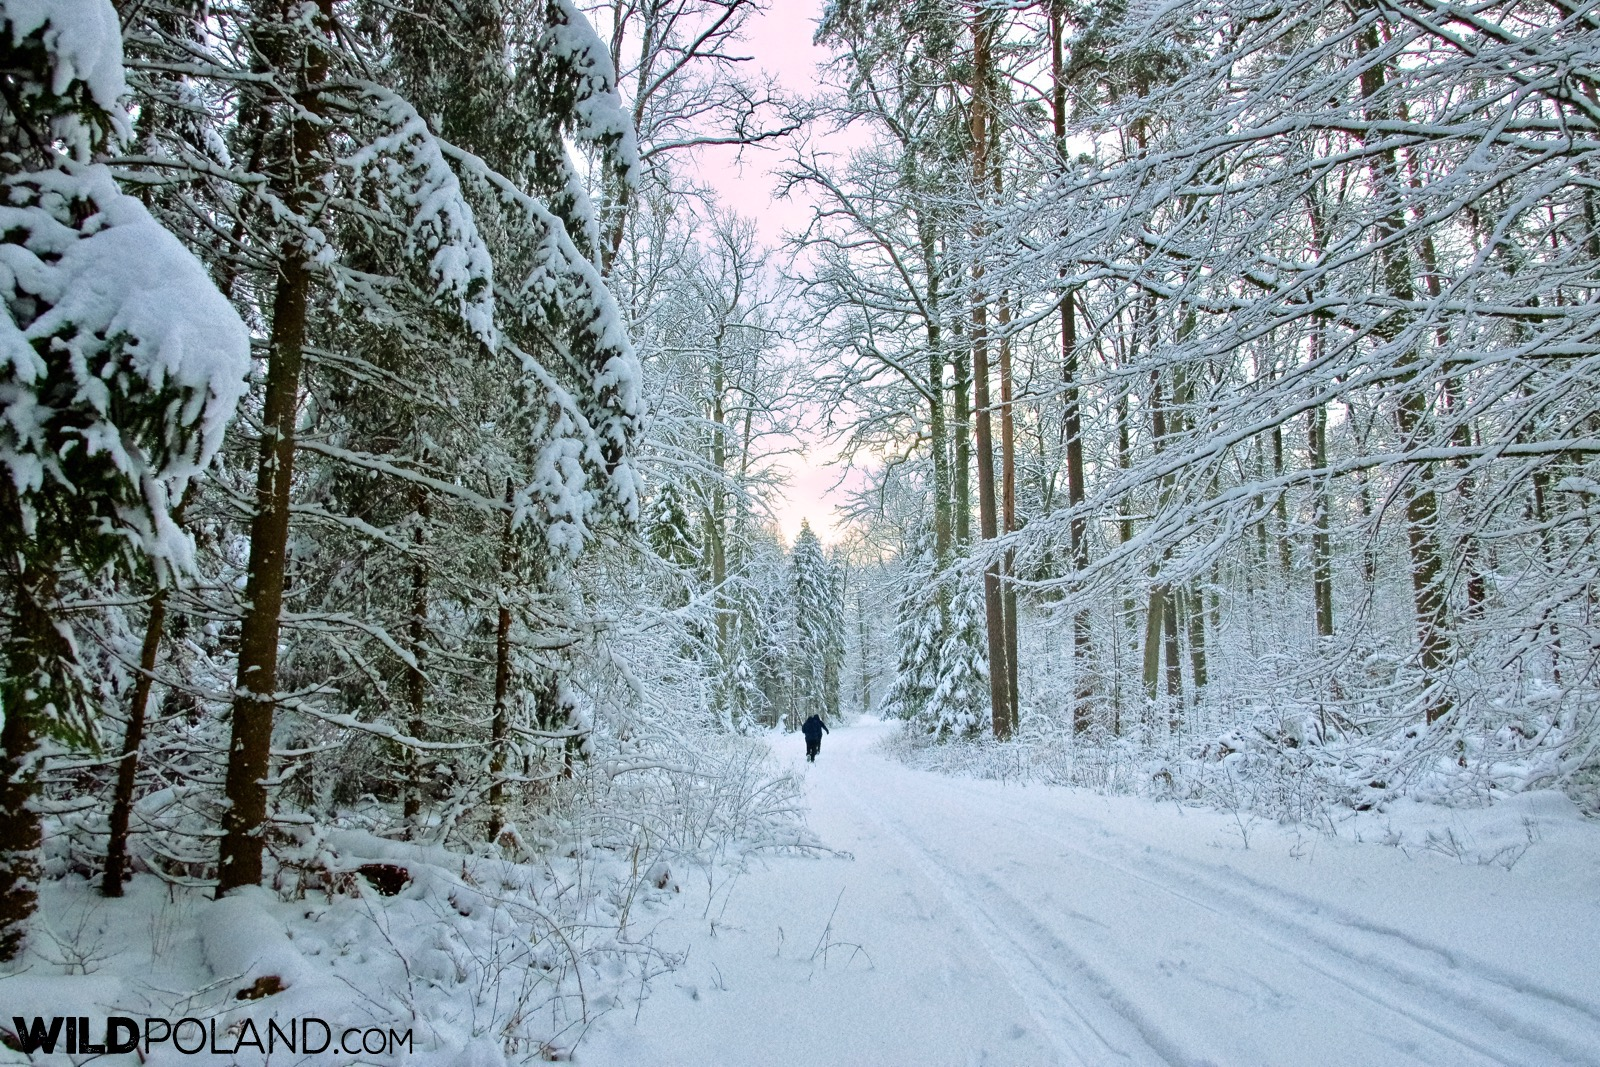 Walking through the snowy paths of Białowieża Forest, photo by Andrzej Petryna